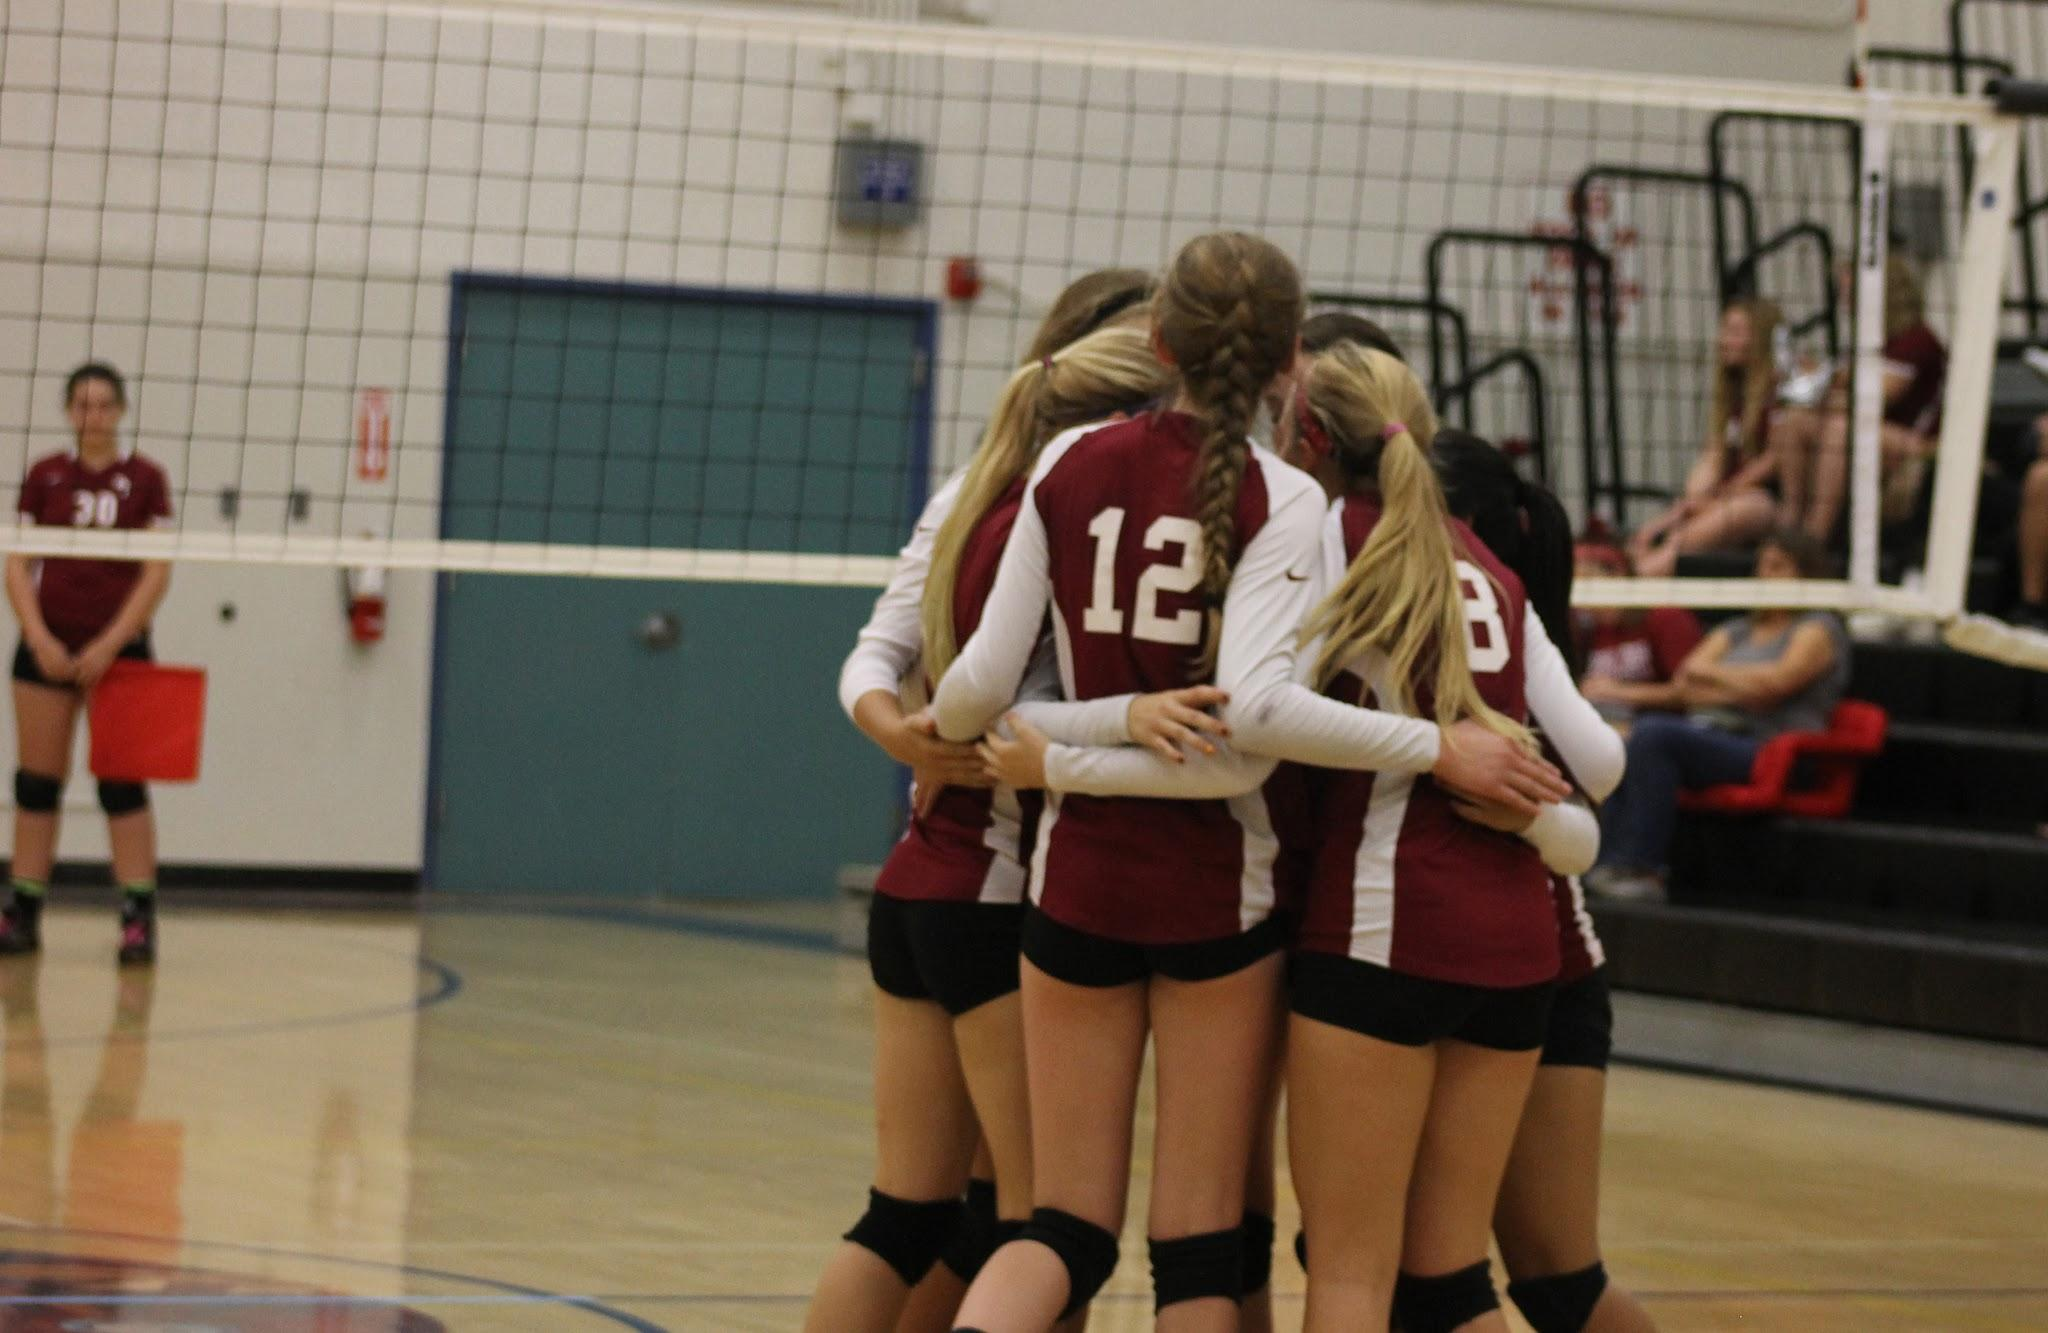 The Foothill varsity girl's volleyball team hugging at their game, October 30, 2014. Credit: Elizabeth Anthony/The Foothill Dragon Press